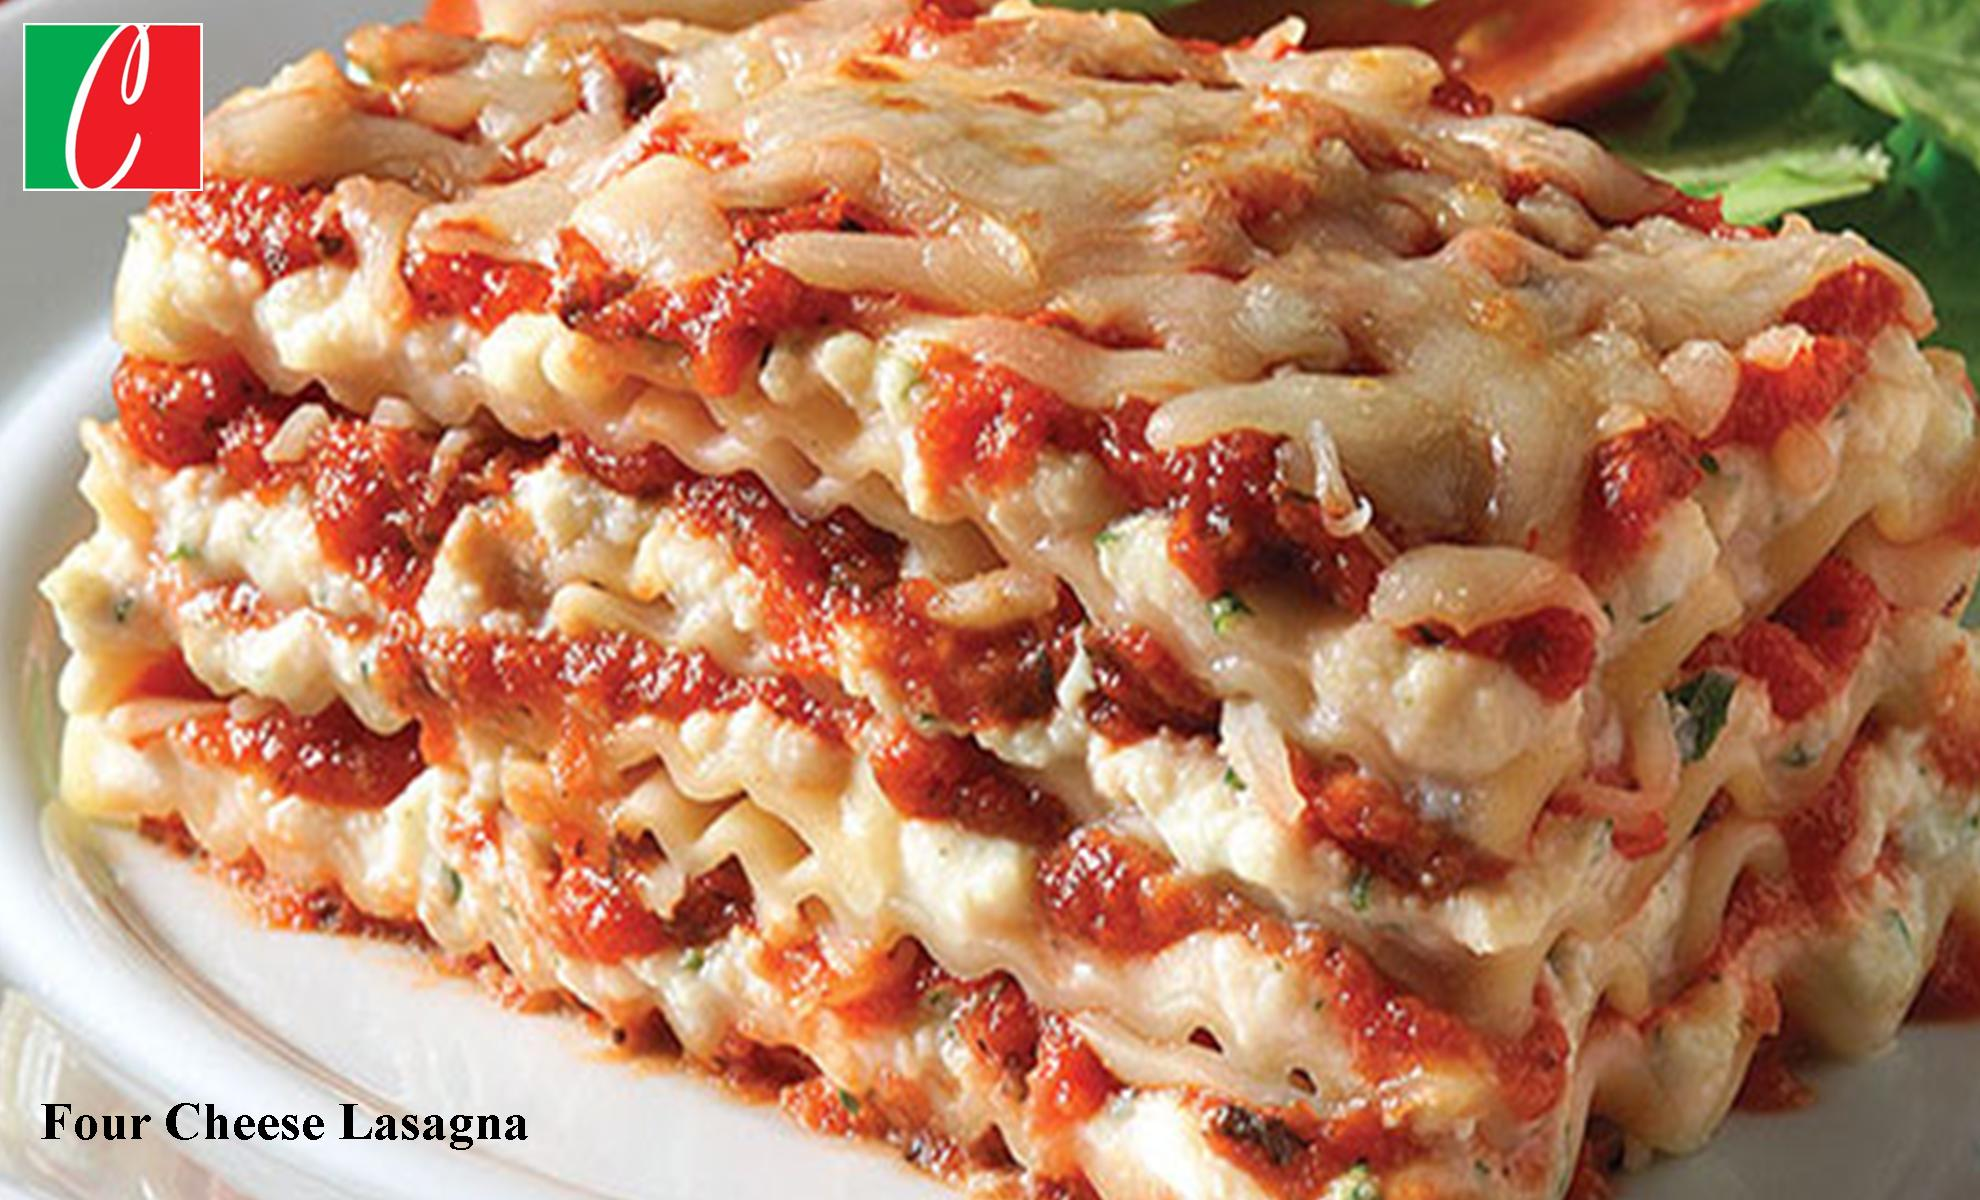 Traditional Four Cheese Lasagna - Half Pans serve 8 - 10 people